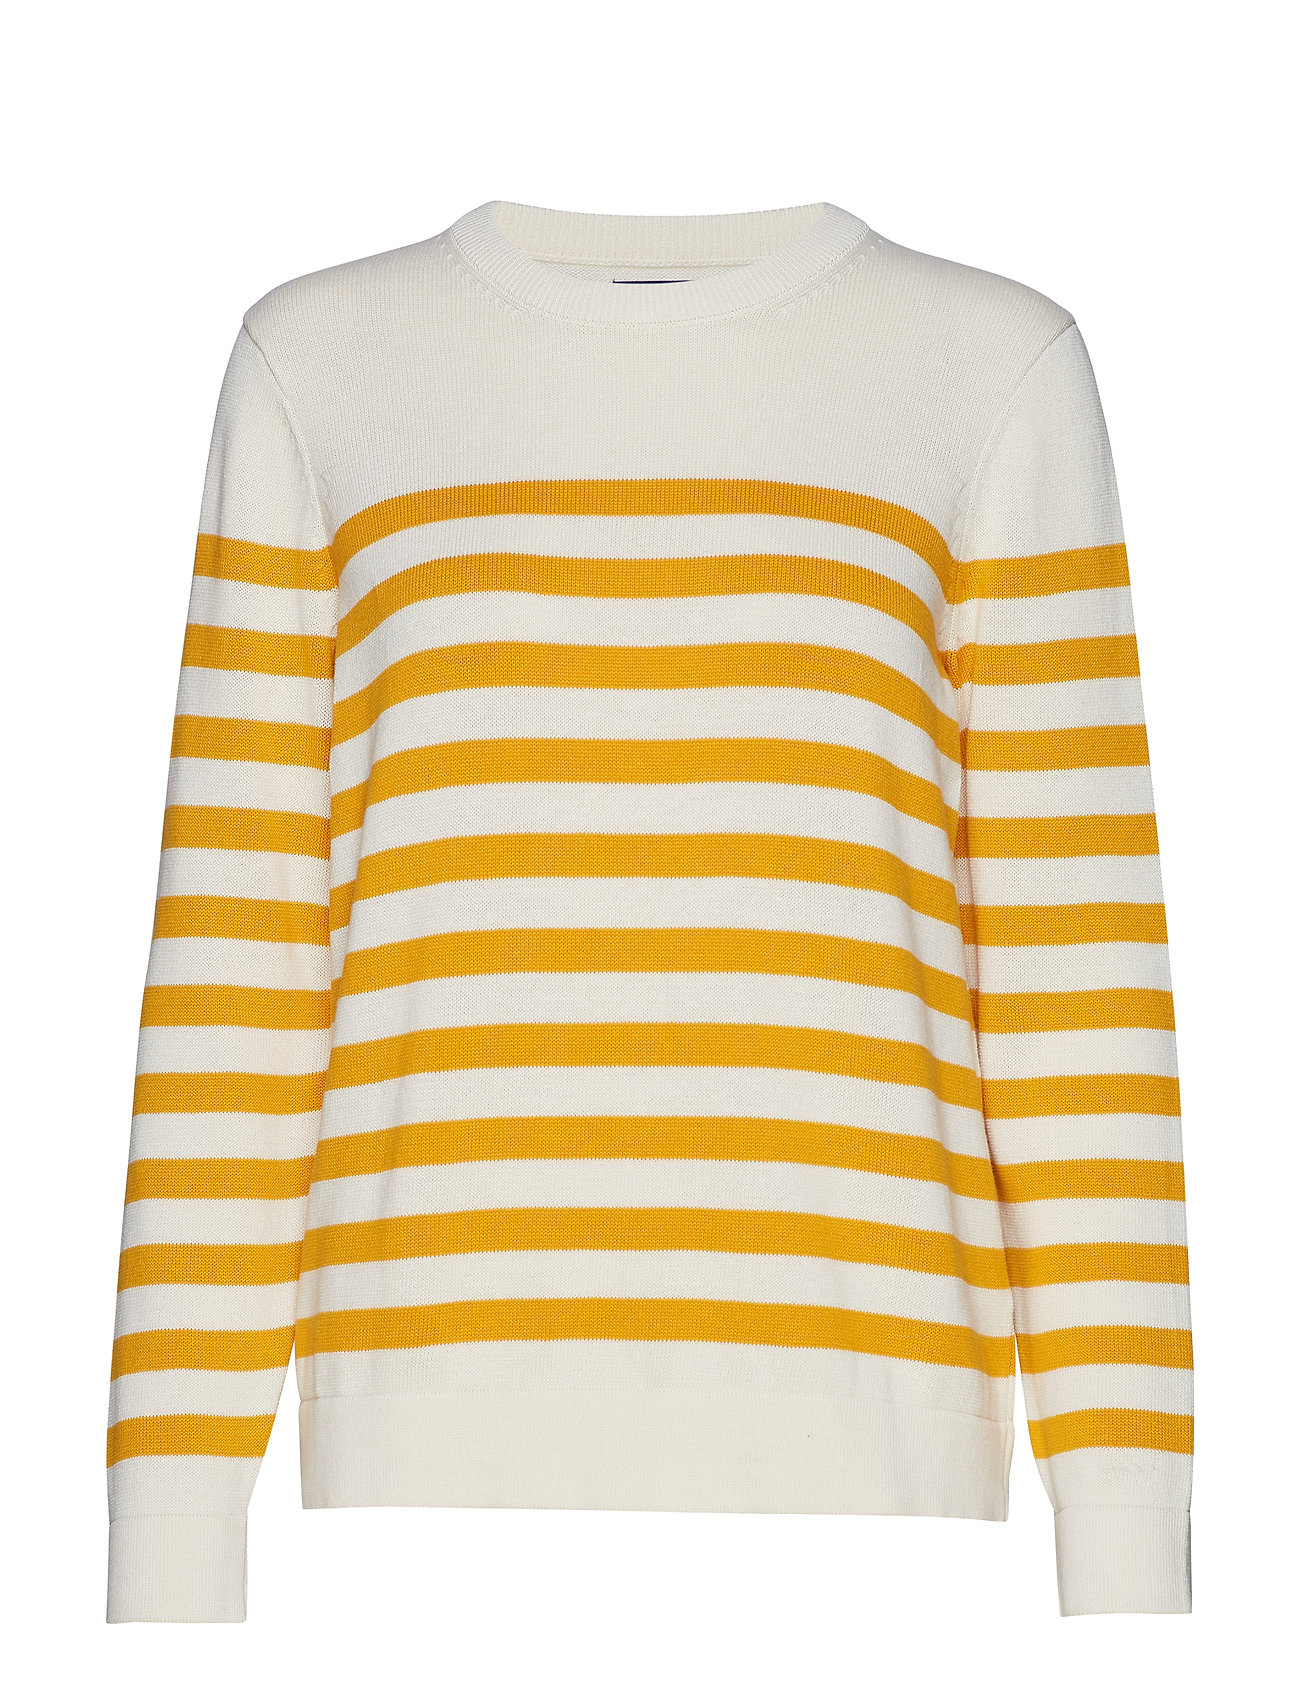 GANT D1. STRIPED COTTON CREW - CREAM